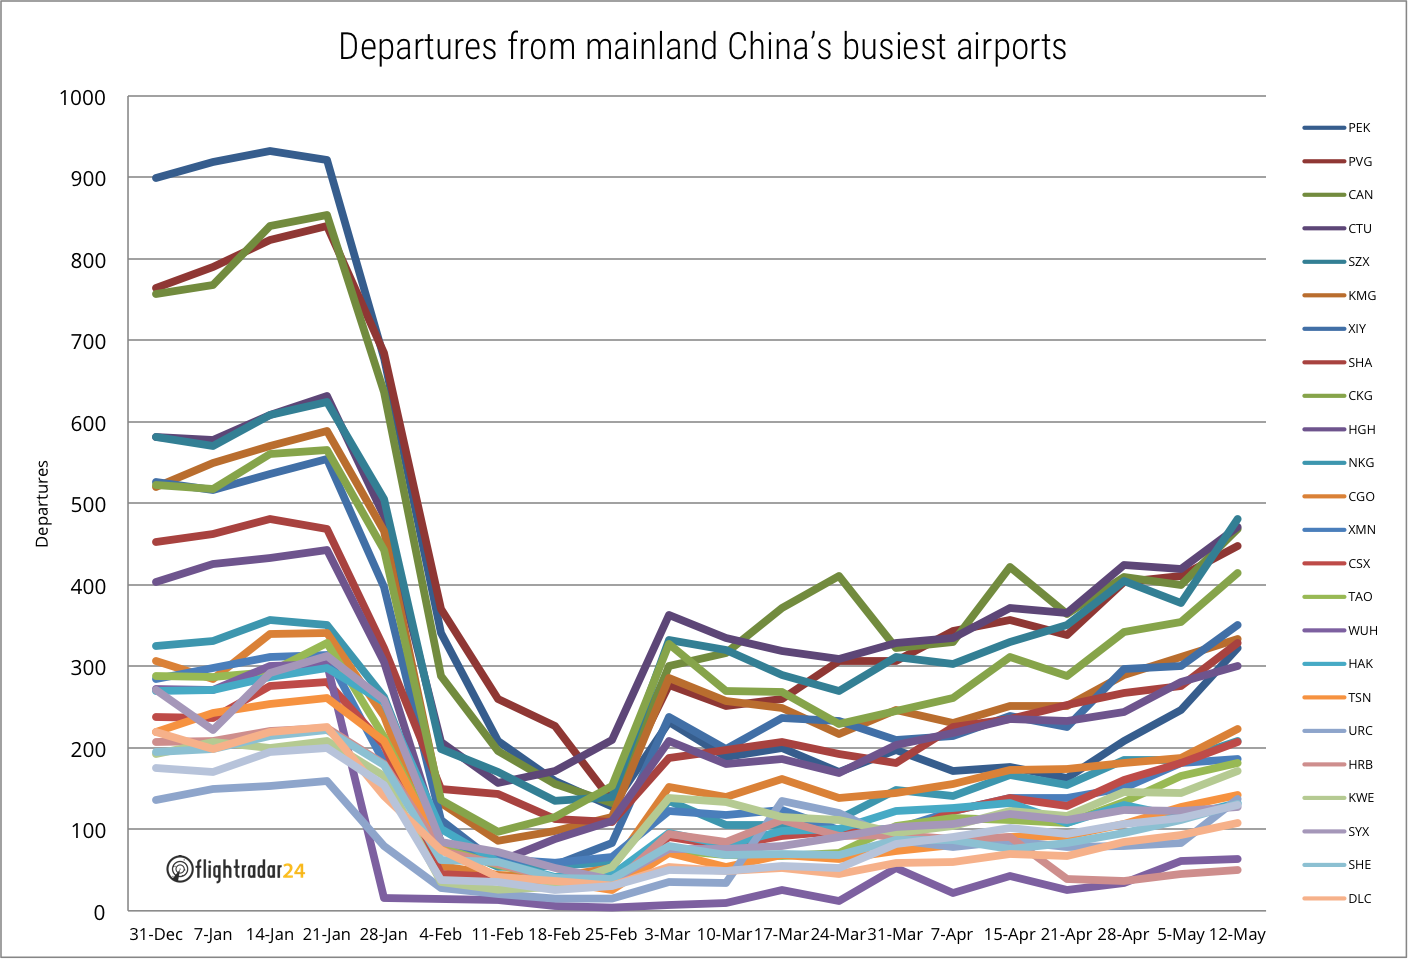 Departures from mainland China's 25 busiest airports